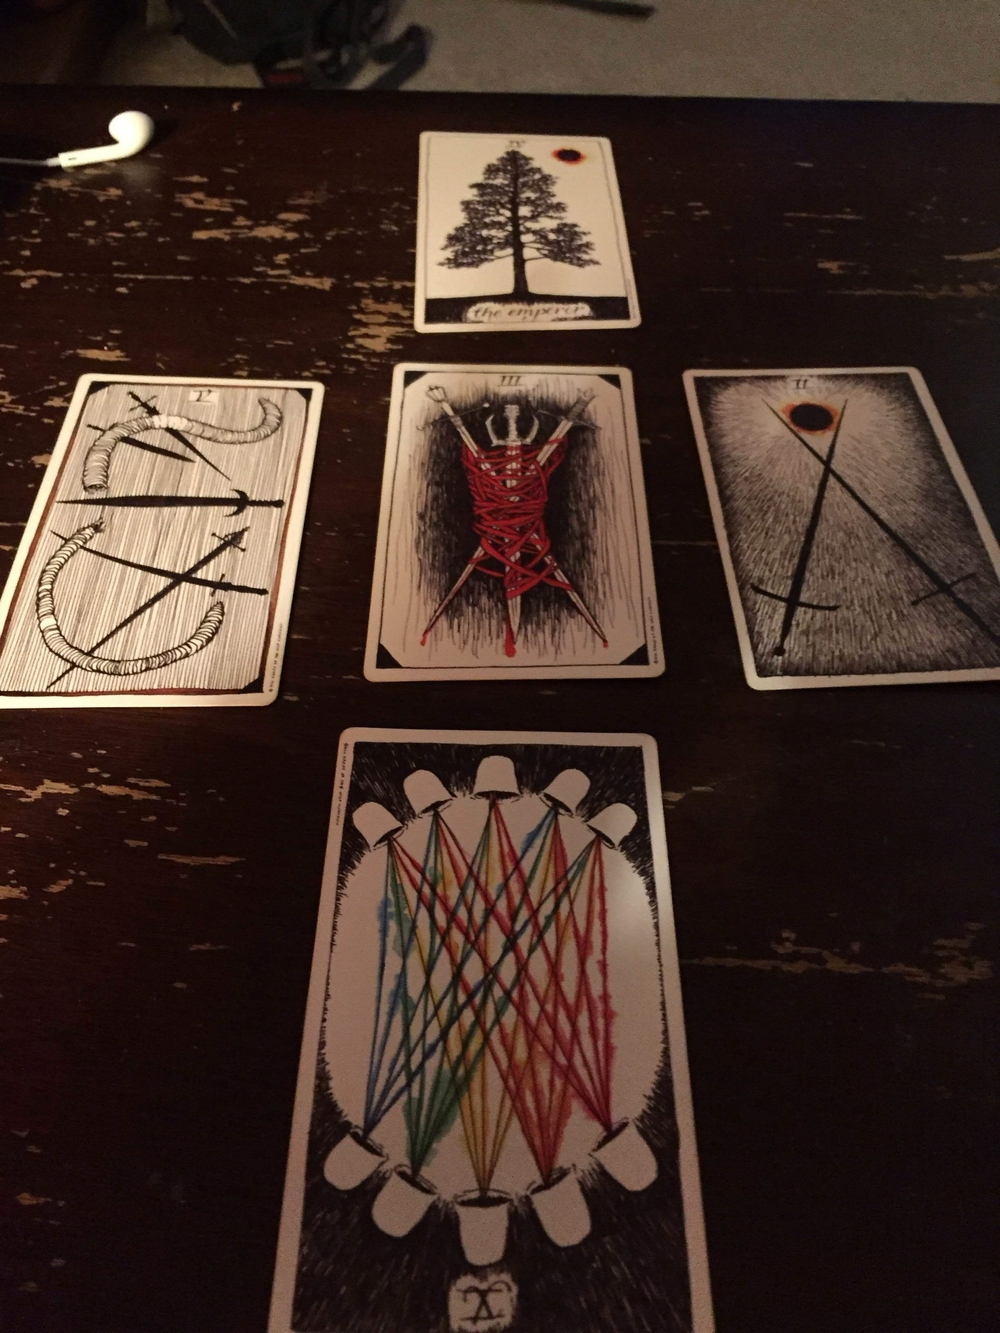 You Are Here spread.  With a serious assist from the Red Headed Stranger.  Wild Unknown deck.